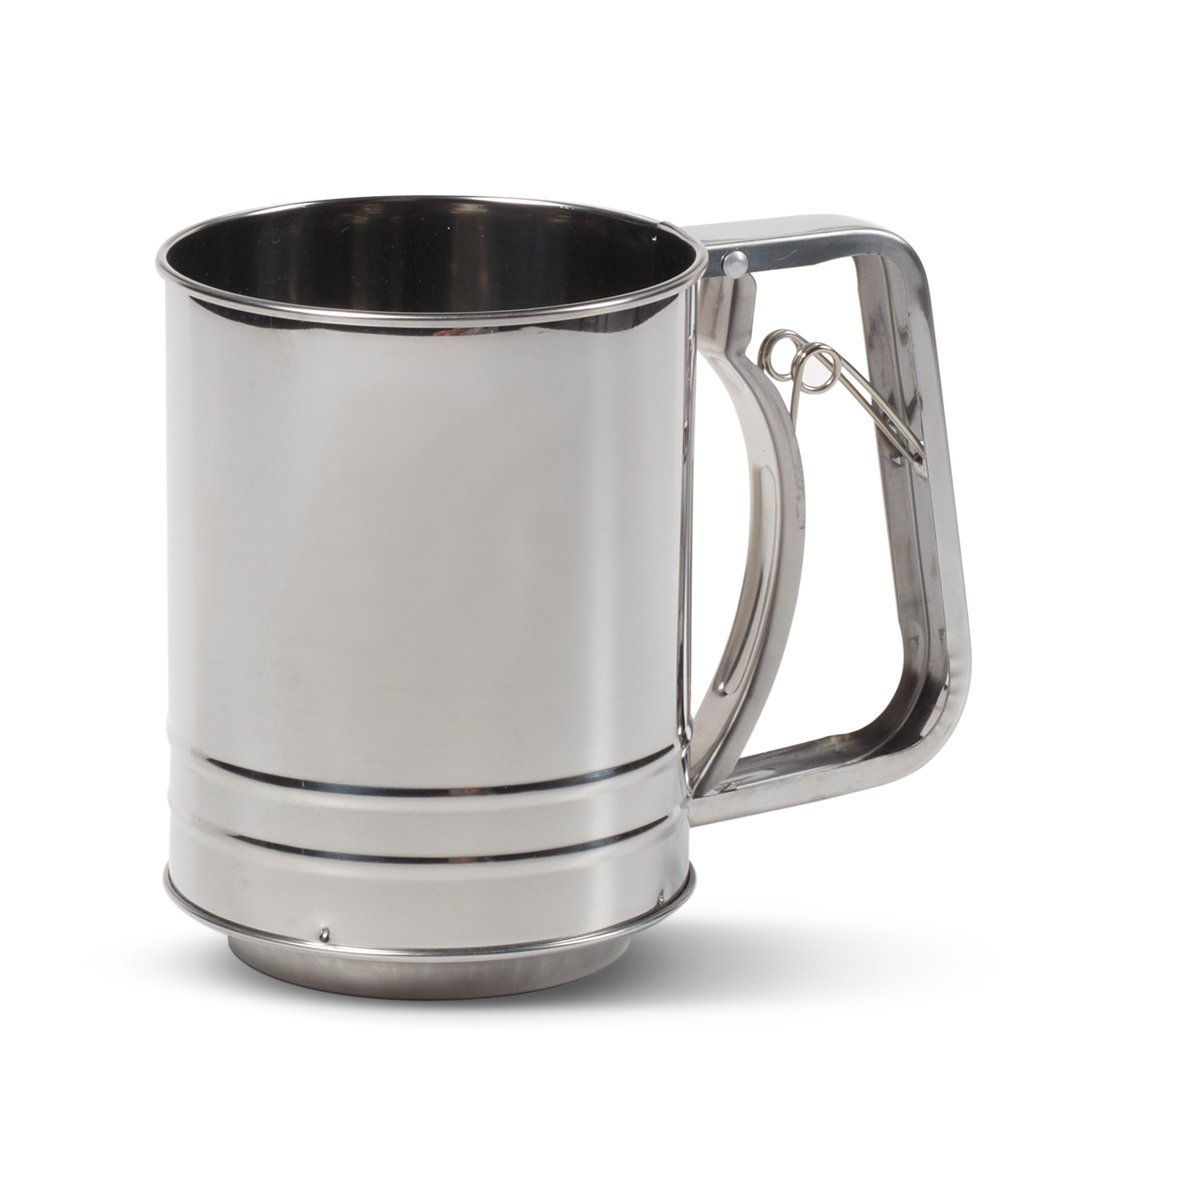 Farberware Classic Stainless Steel Flour Sifter (3-Cup) by Farberware